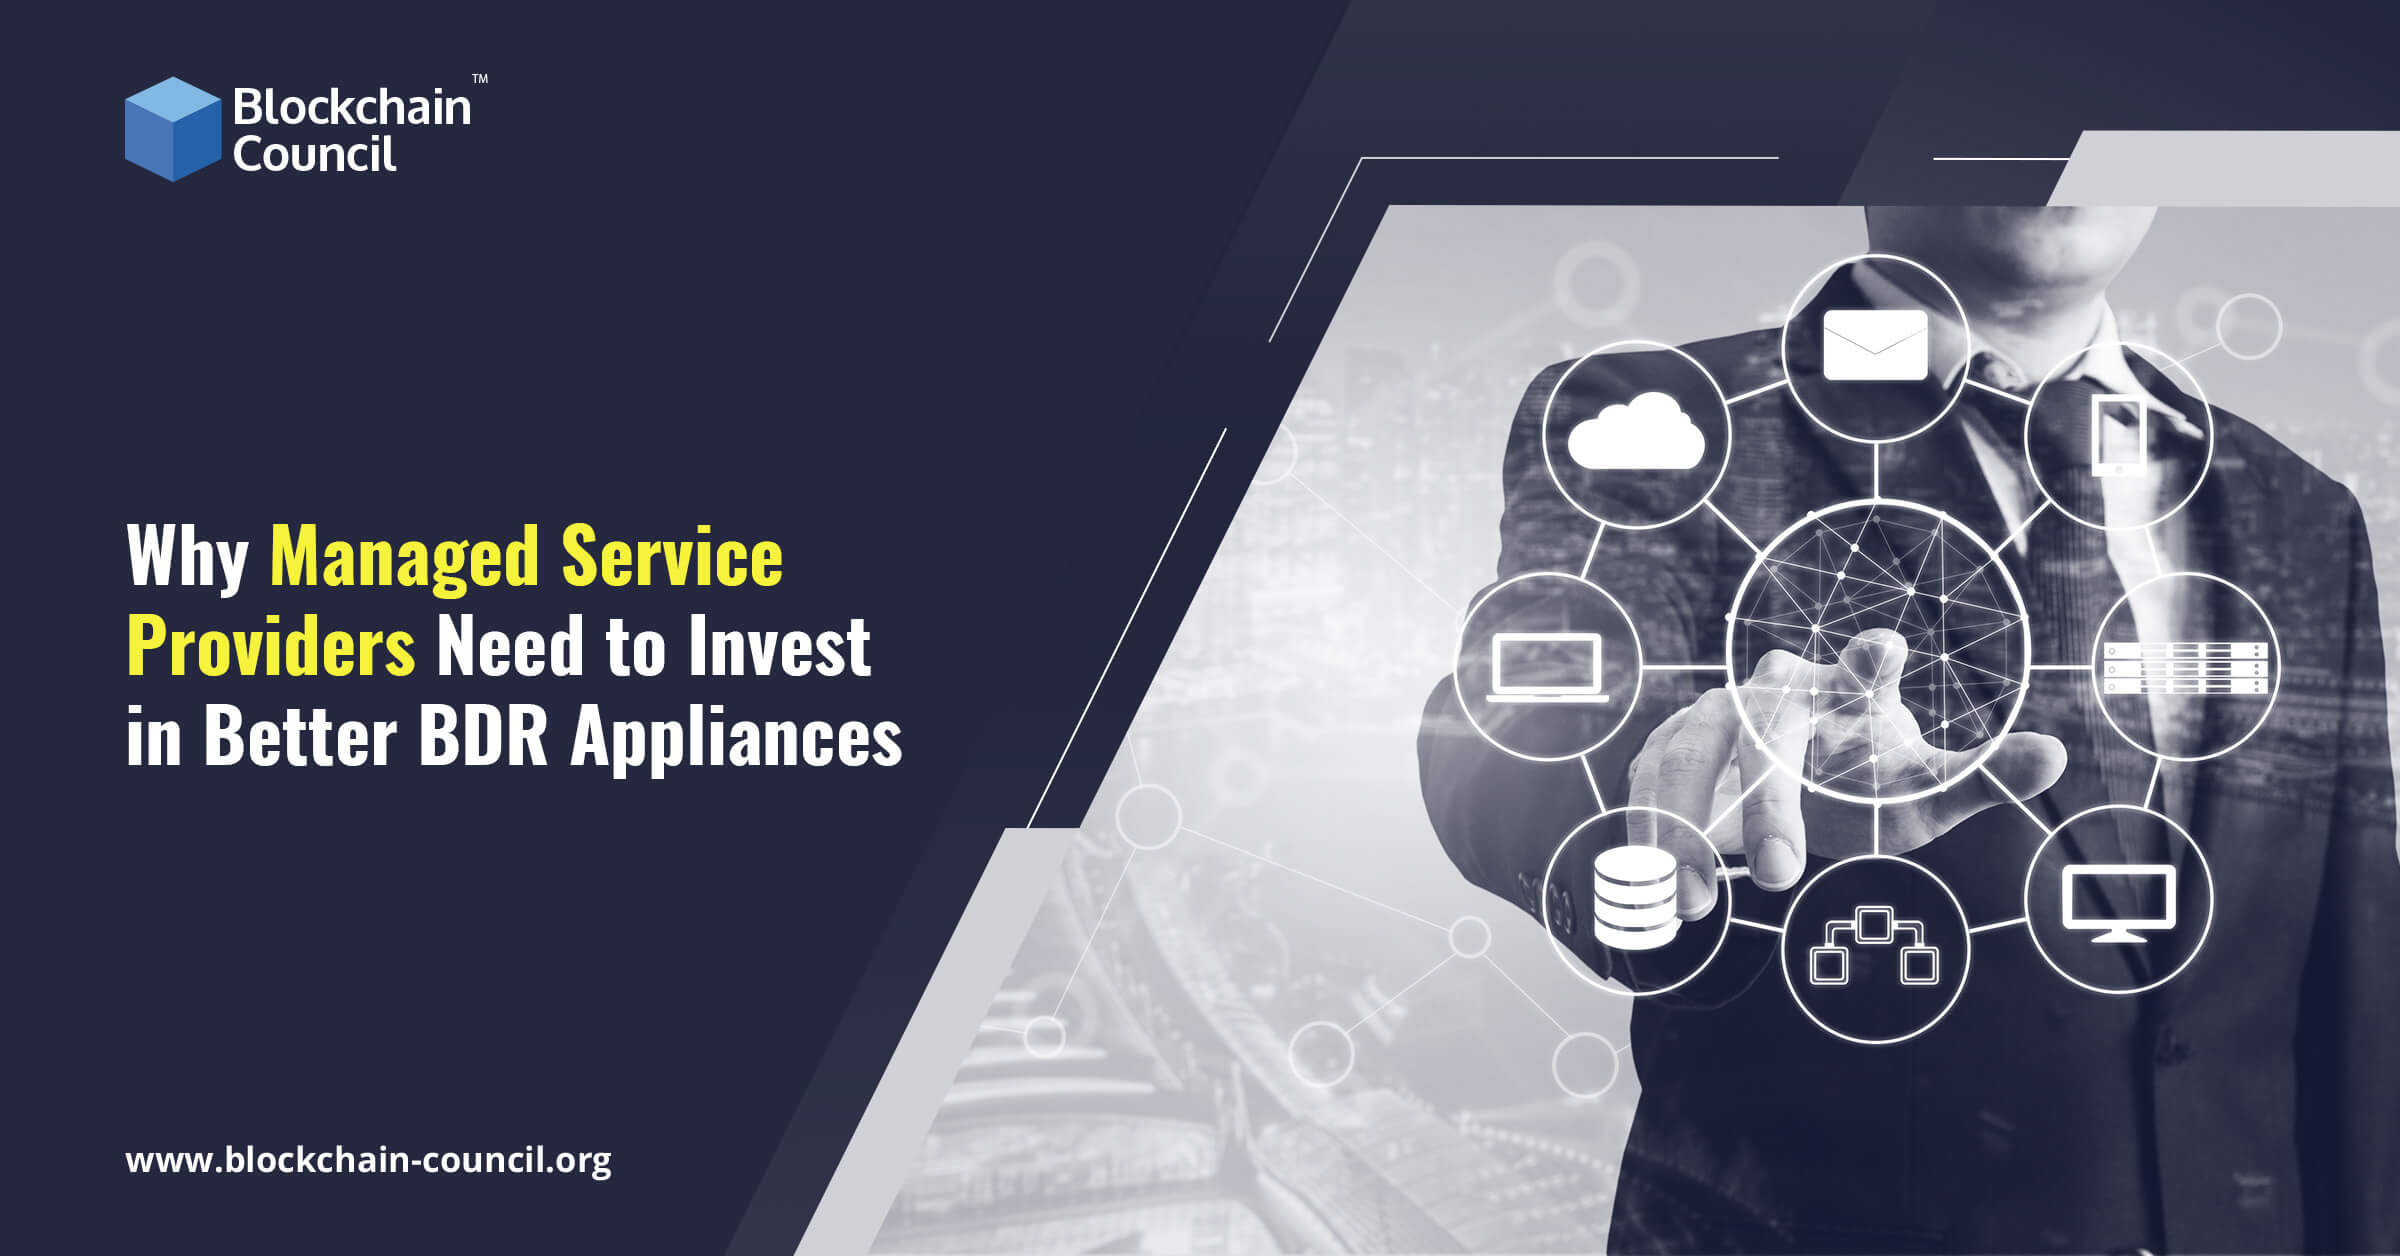 Why Managed Service Providers Need to Invest in Better BDR Appliances 1